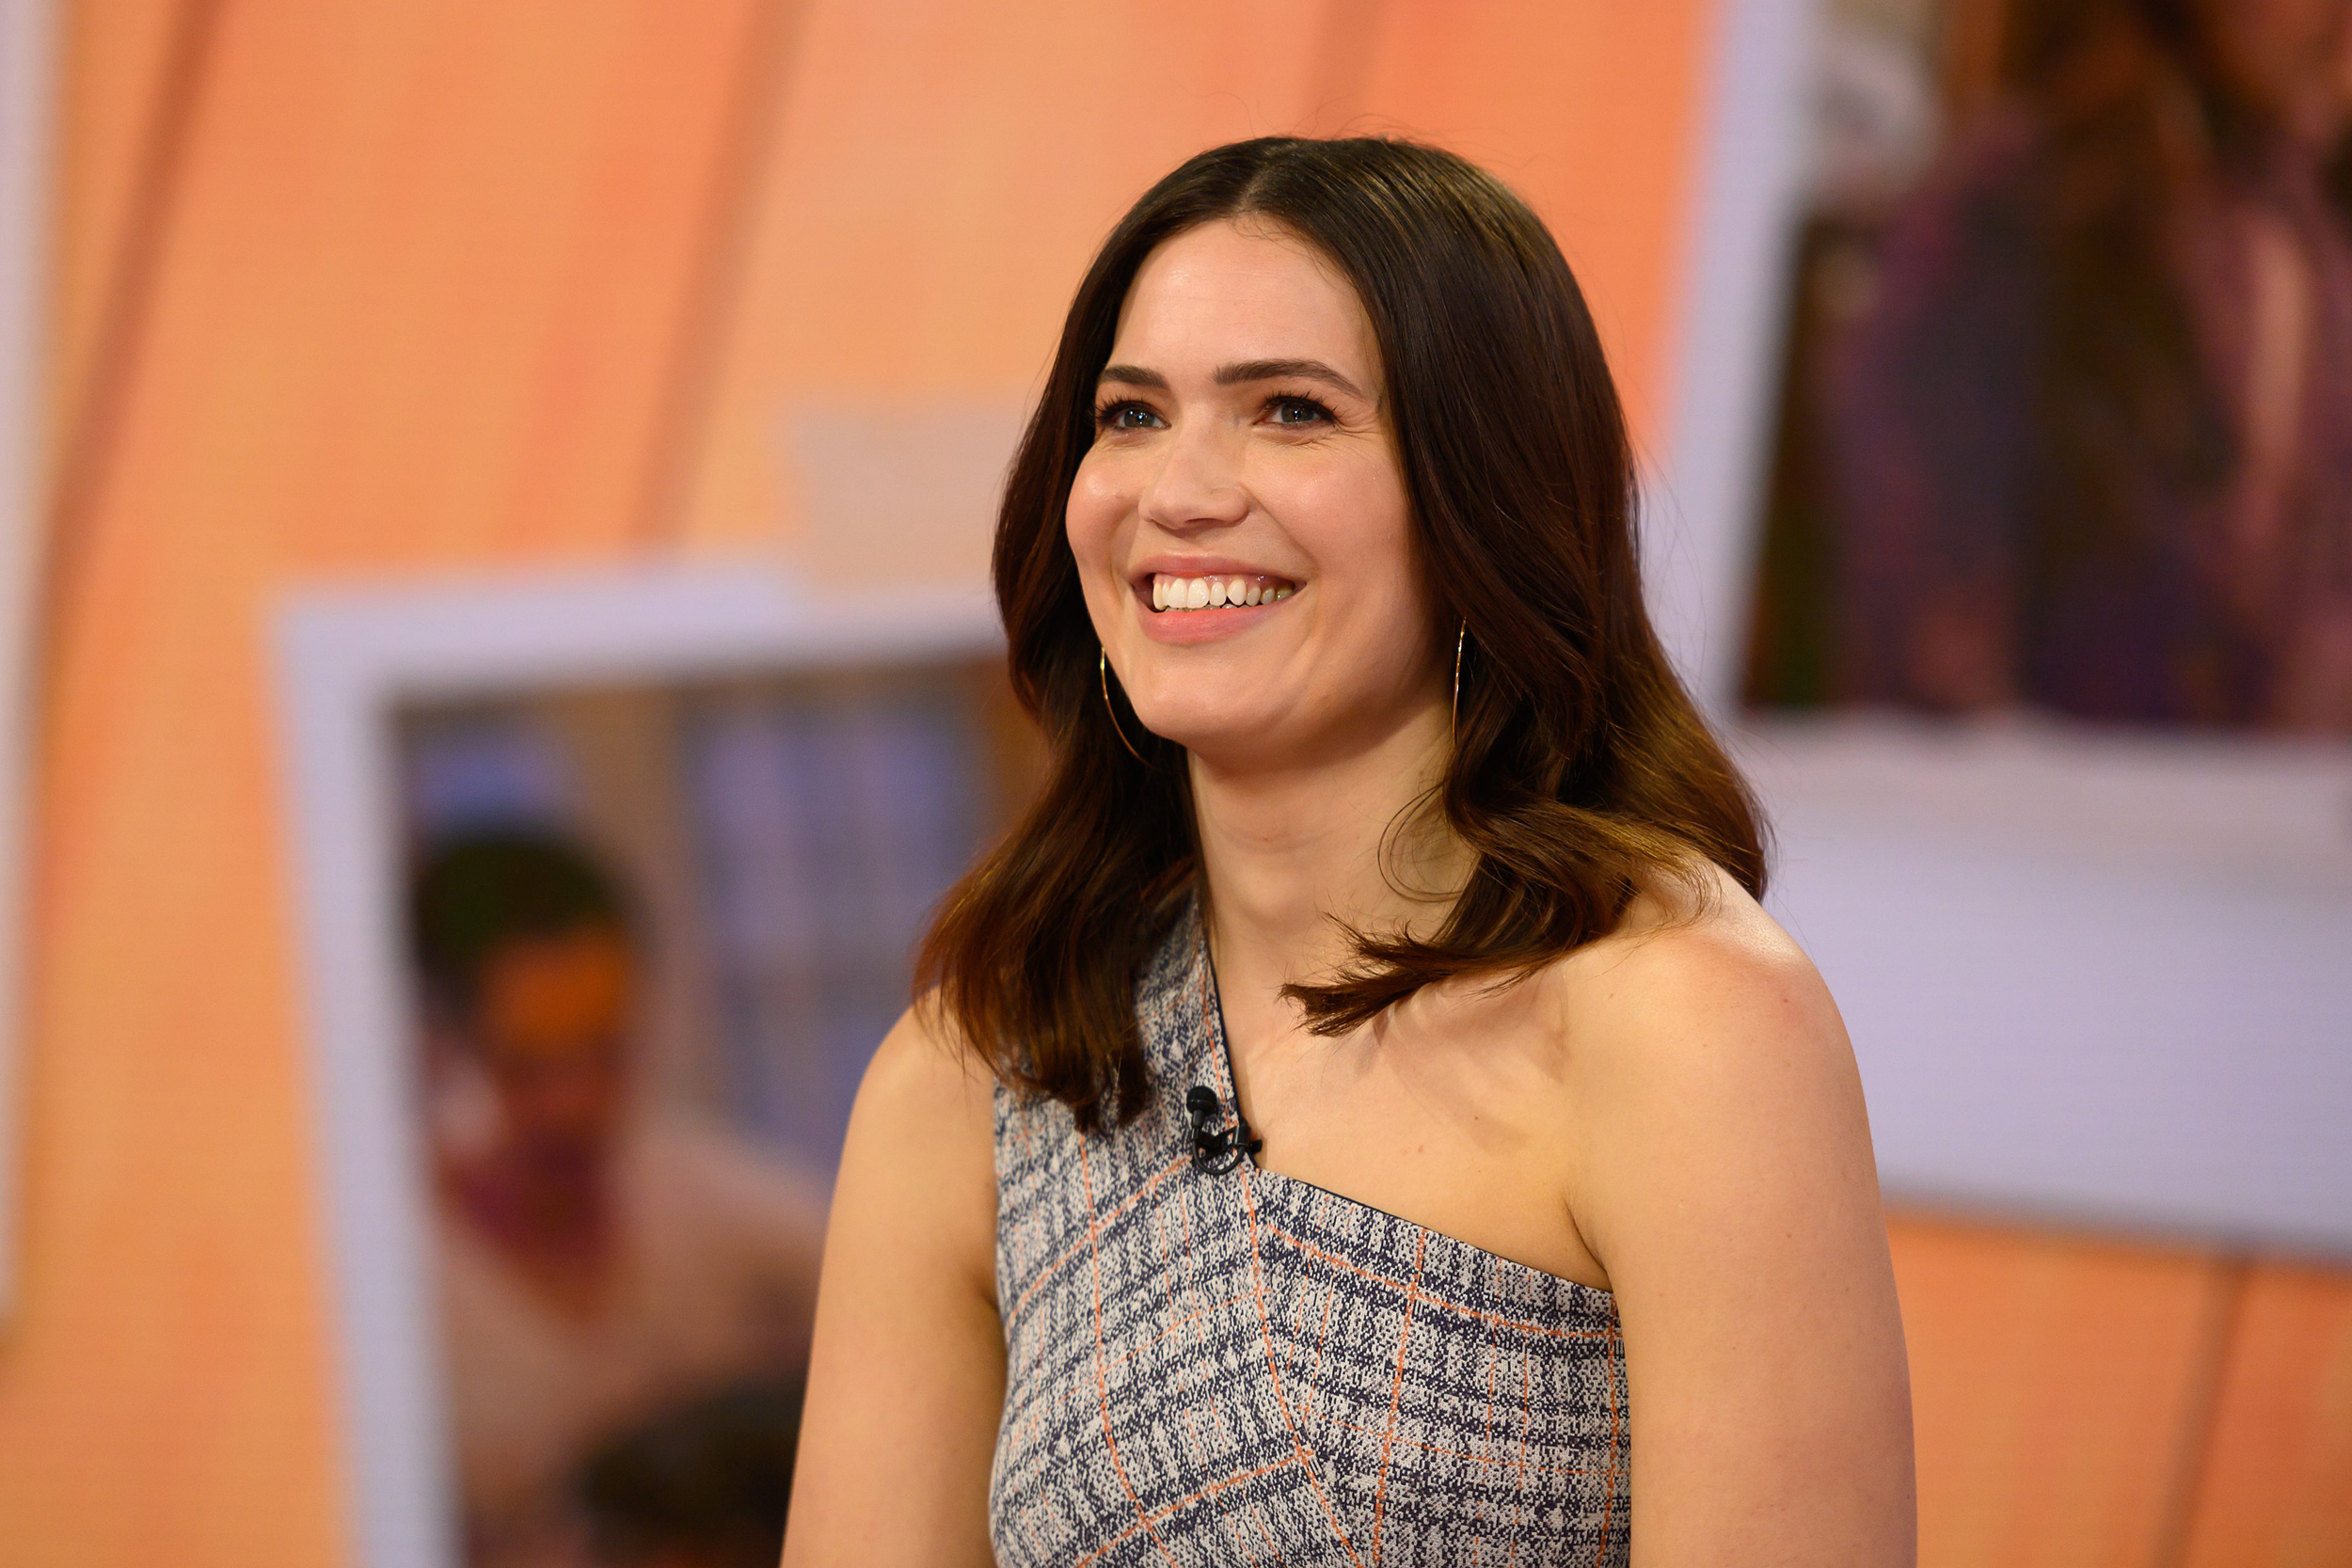 Mandy Moore says 'This is Us' gives us a chance to process